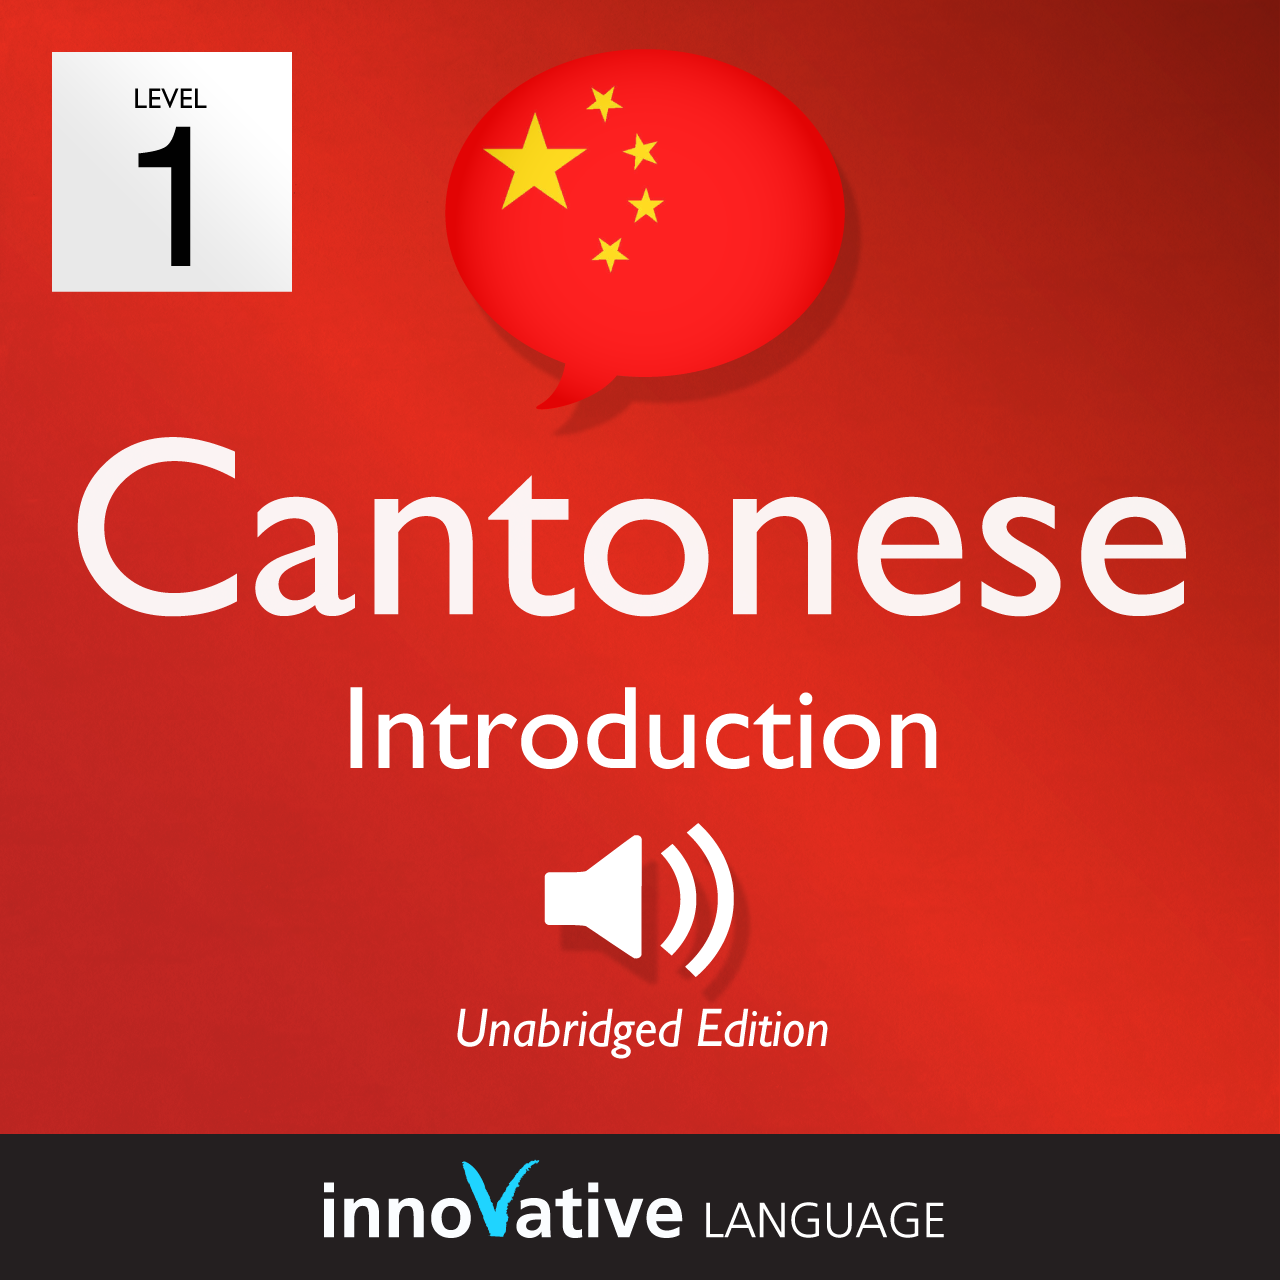 6 Best Cantonese Textbooks – A List for Beginners